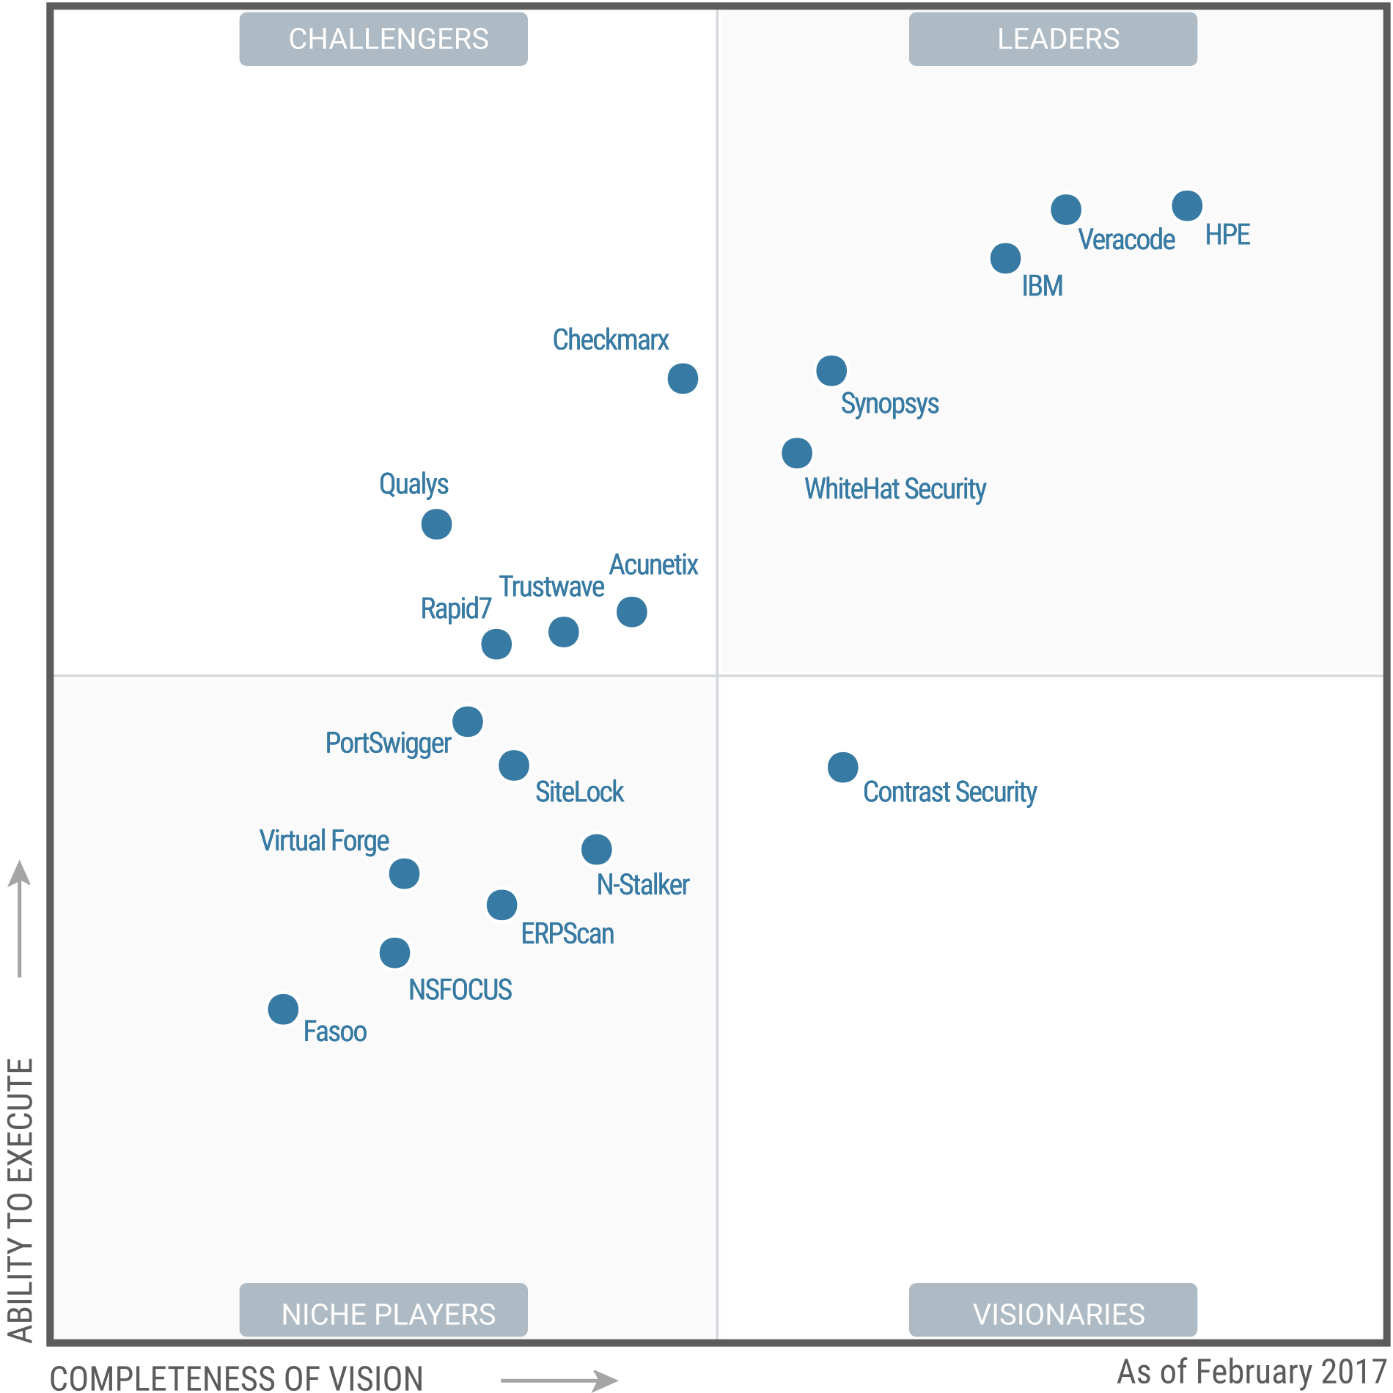 Magic Quadrant for Application Security Testing 2017 (G00290926)